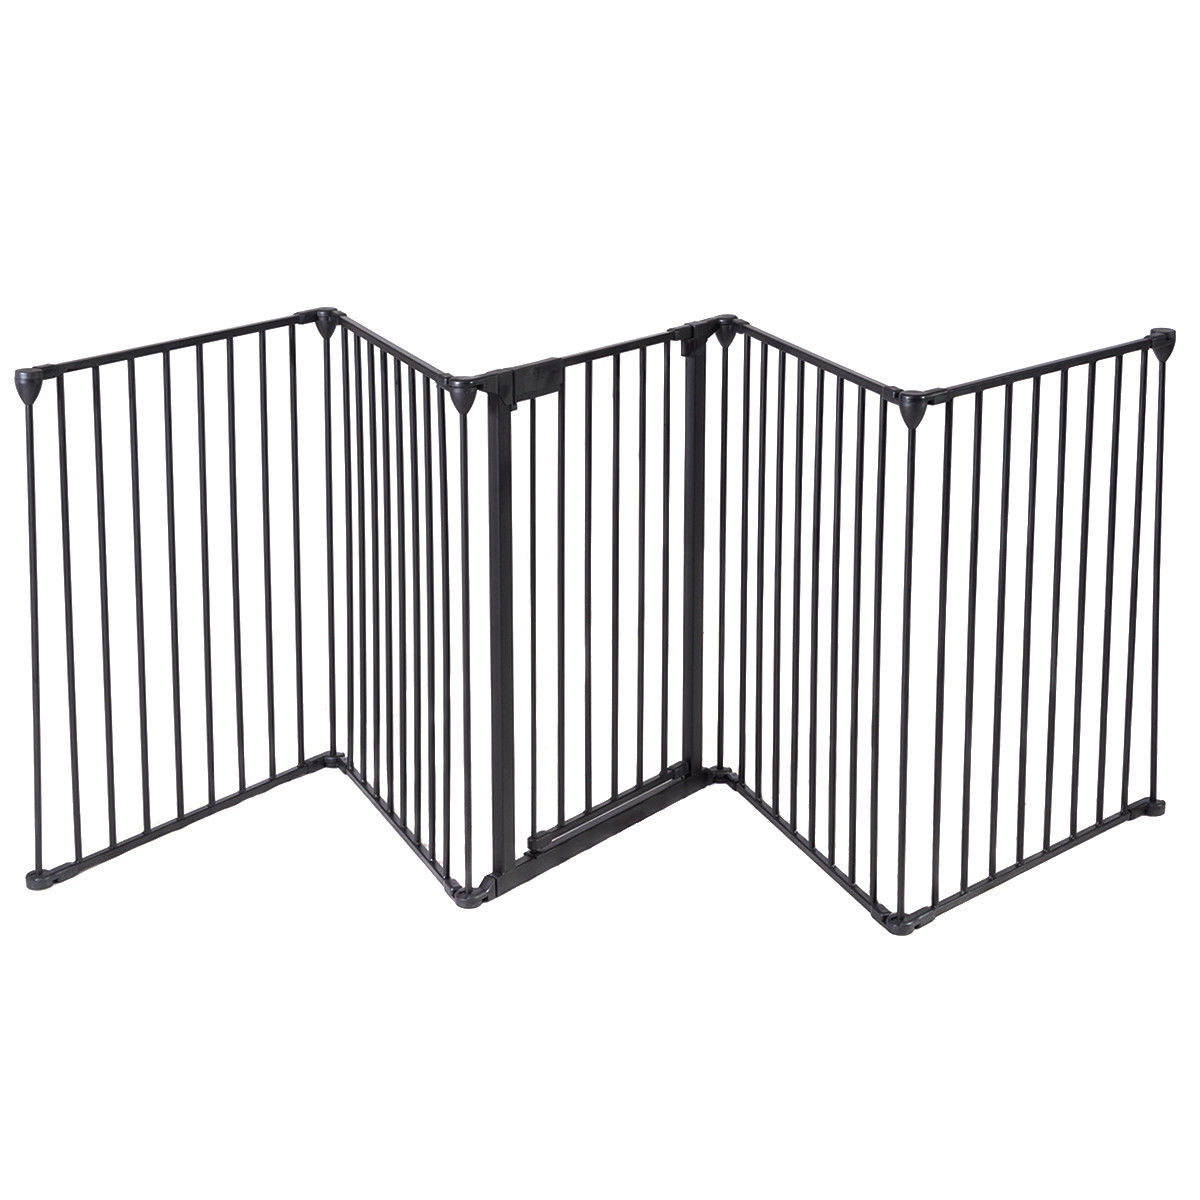 Fireplace Fence Baby Safety Fence Hearth Gate Pet Cat Steel Fire Gate BBQ Black